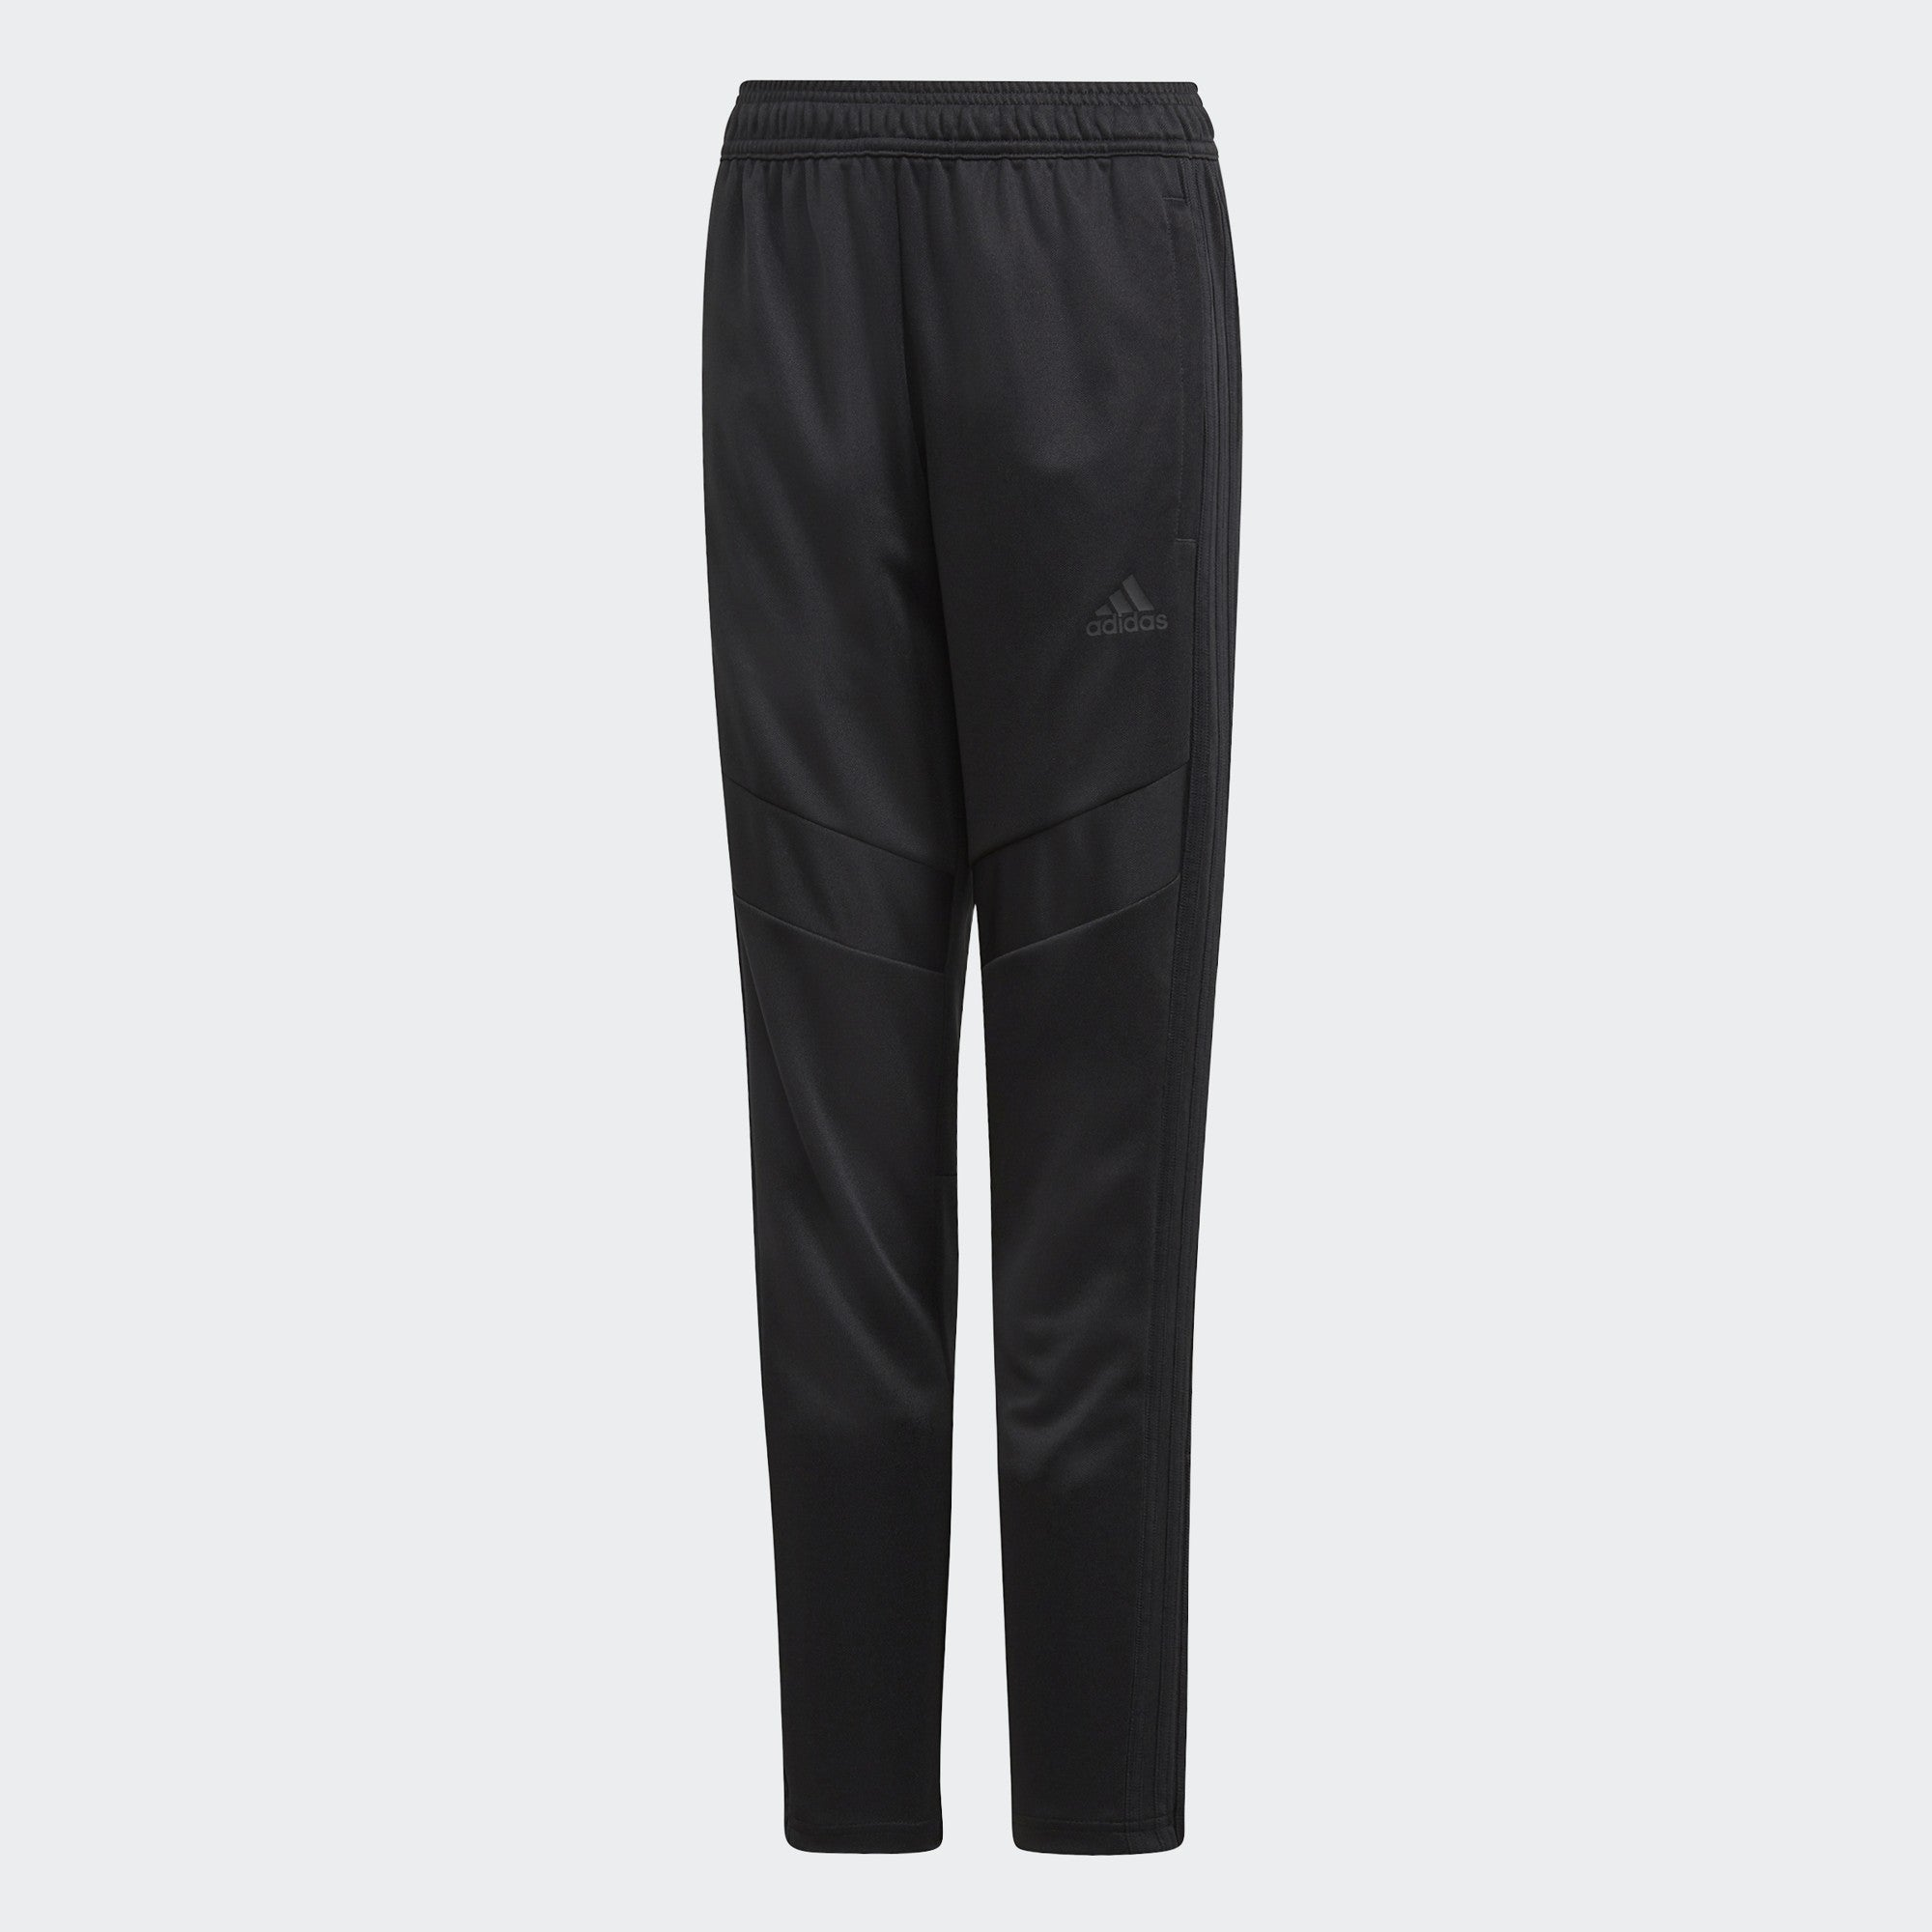 Kid's Tiro19 Training Pants - Black/Black